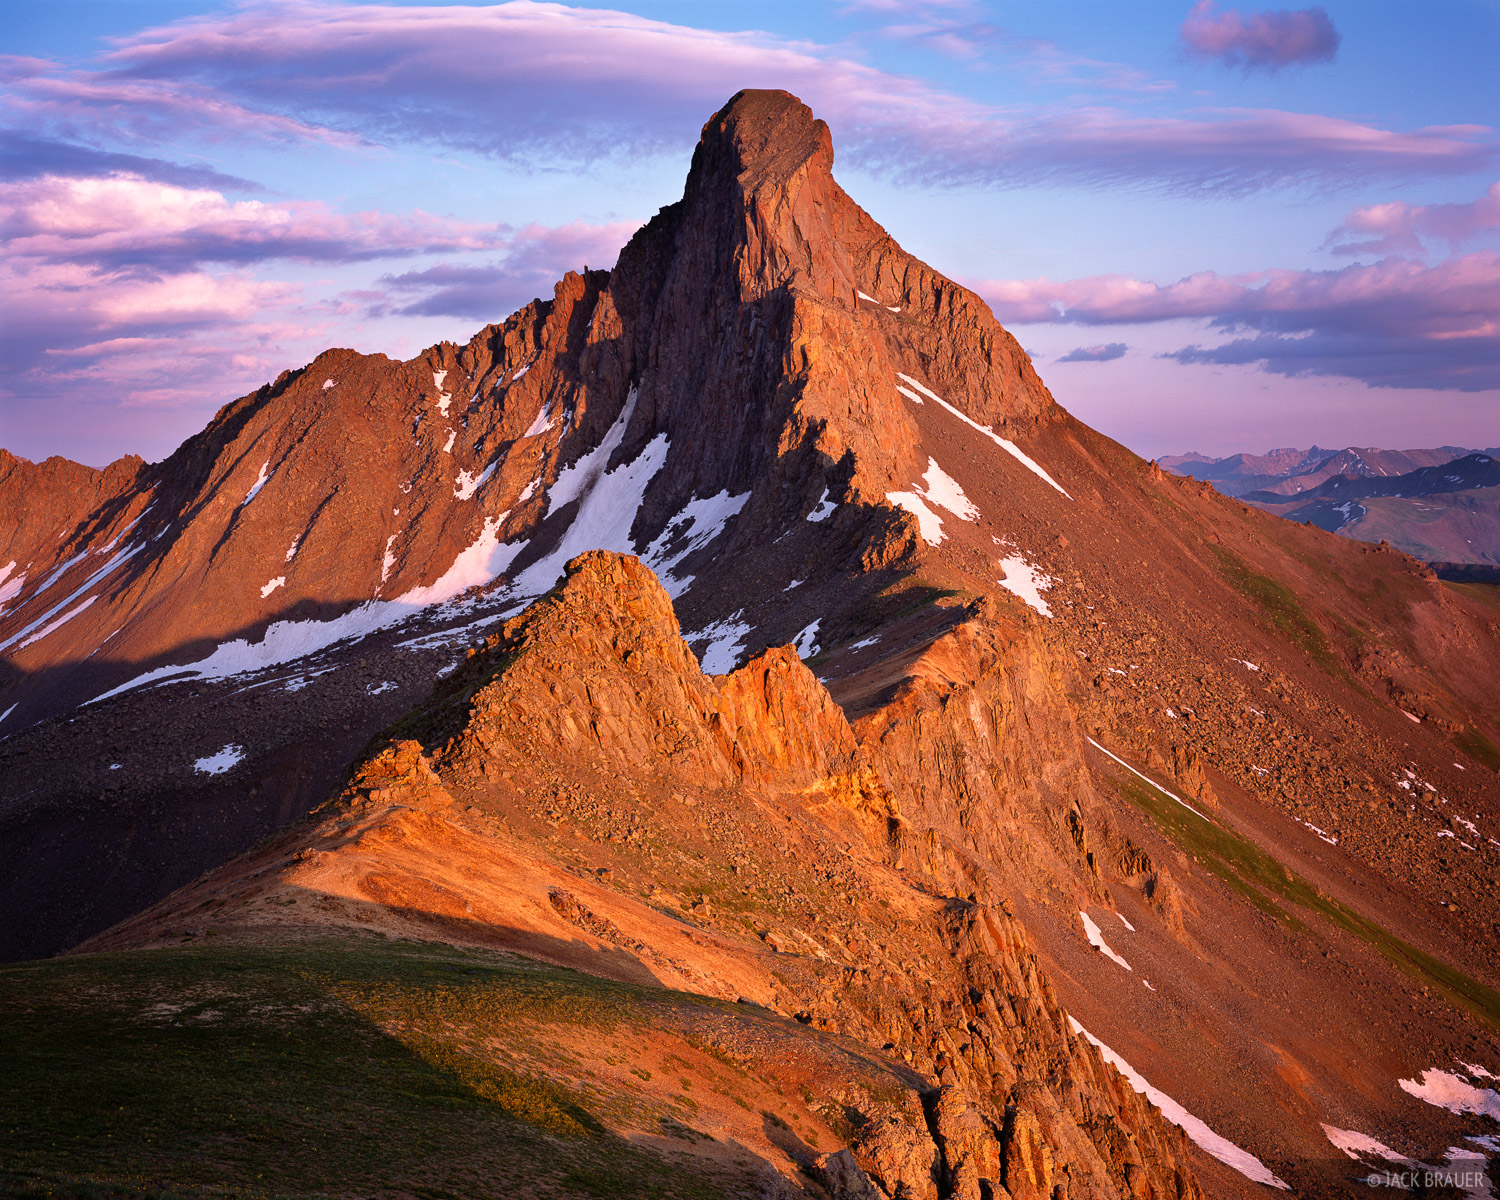 The rugged Wetterhorn Peak, 14,015 feet tall, soaks in the last sunlight of the day.  Uncompahgre Wilderness, July.